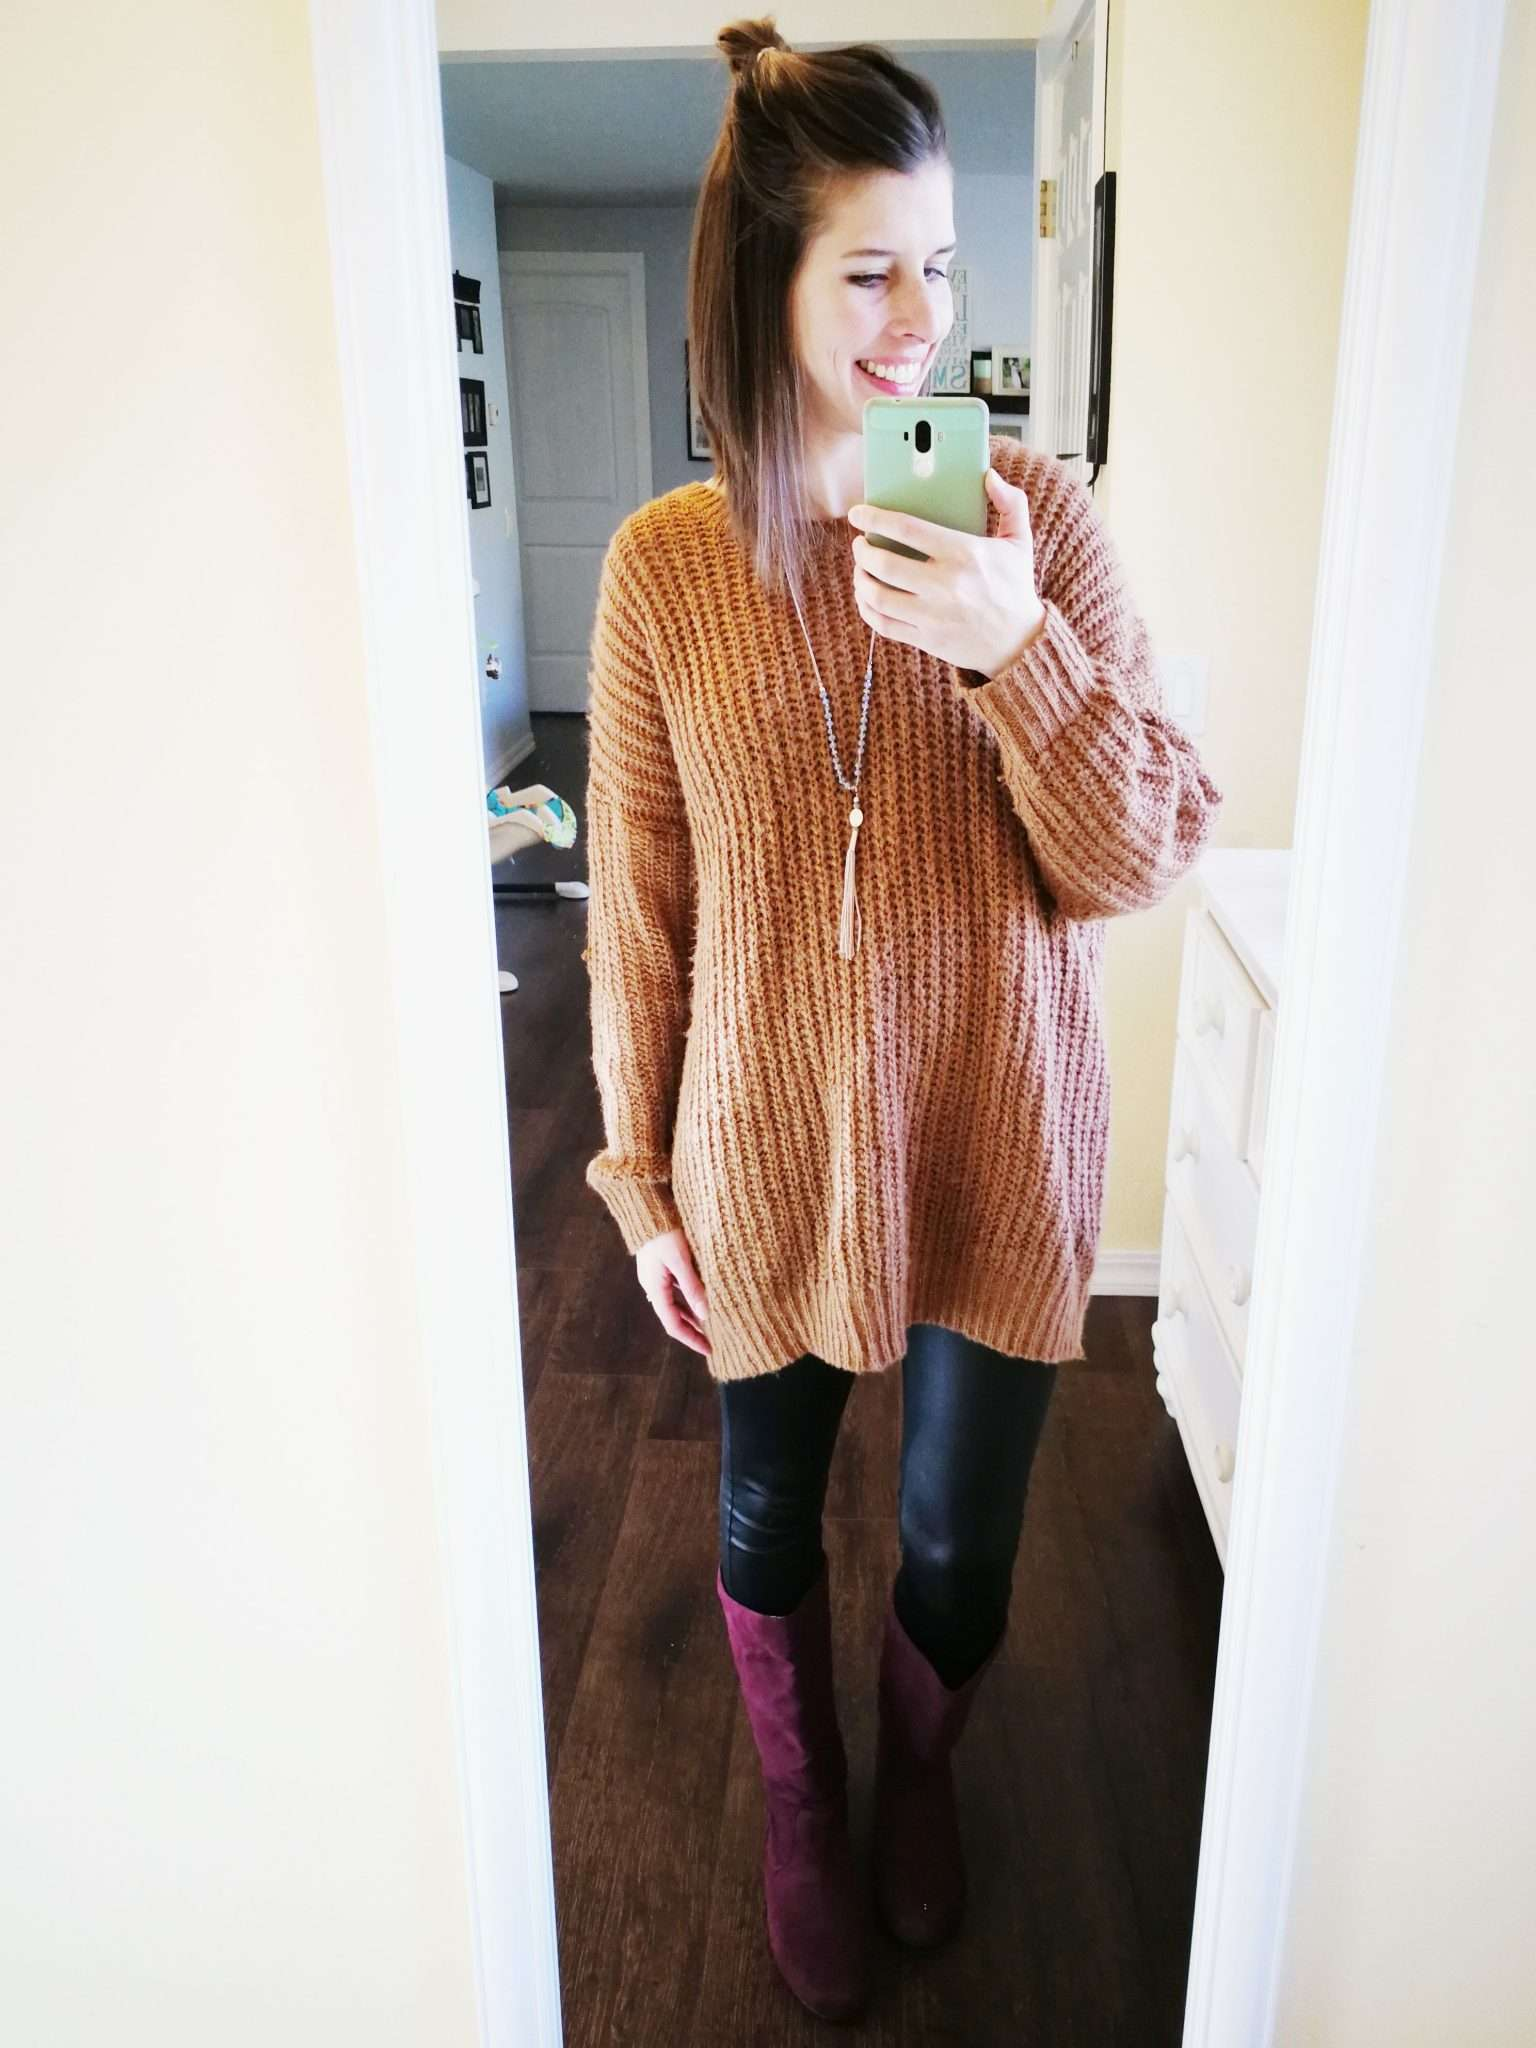 How to wear an oversized slouchy sweater stylishly - with leather leggings